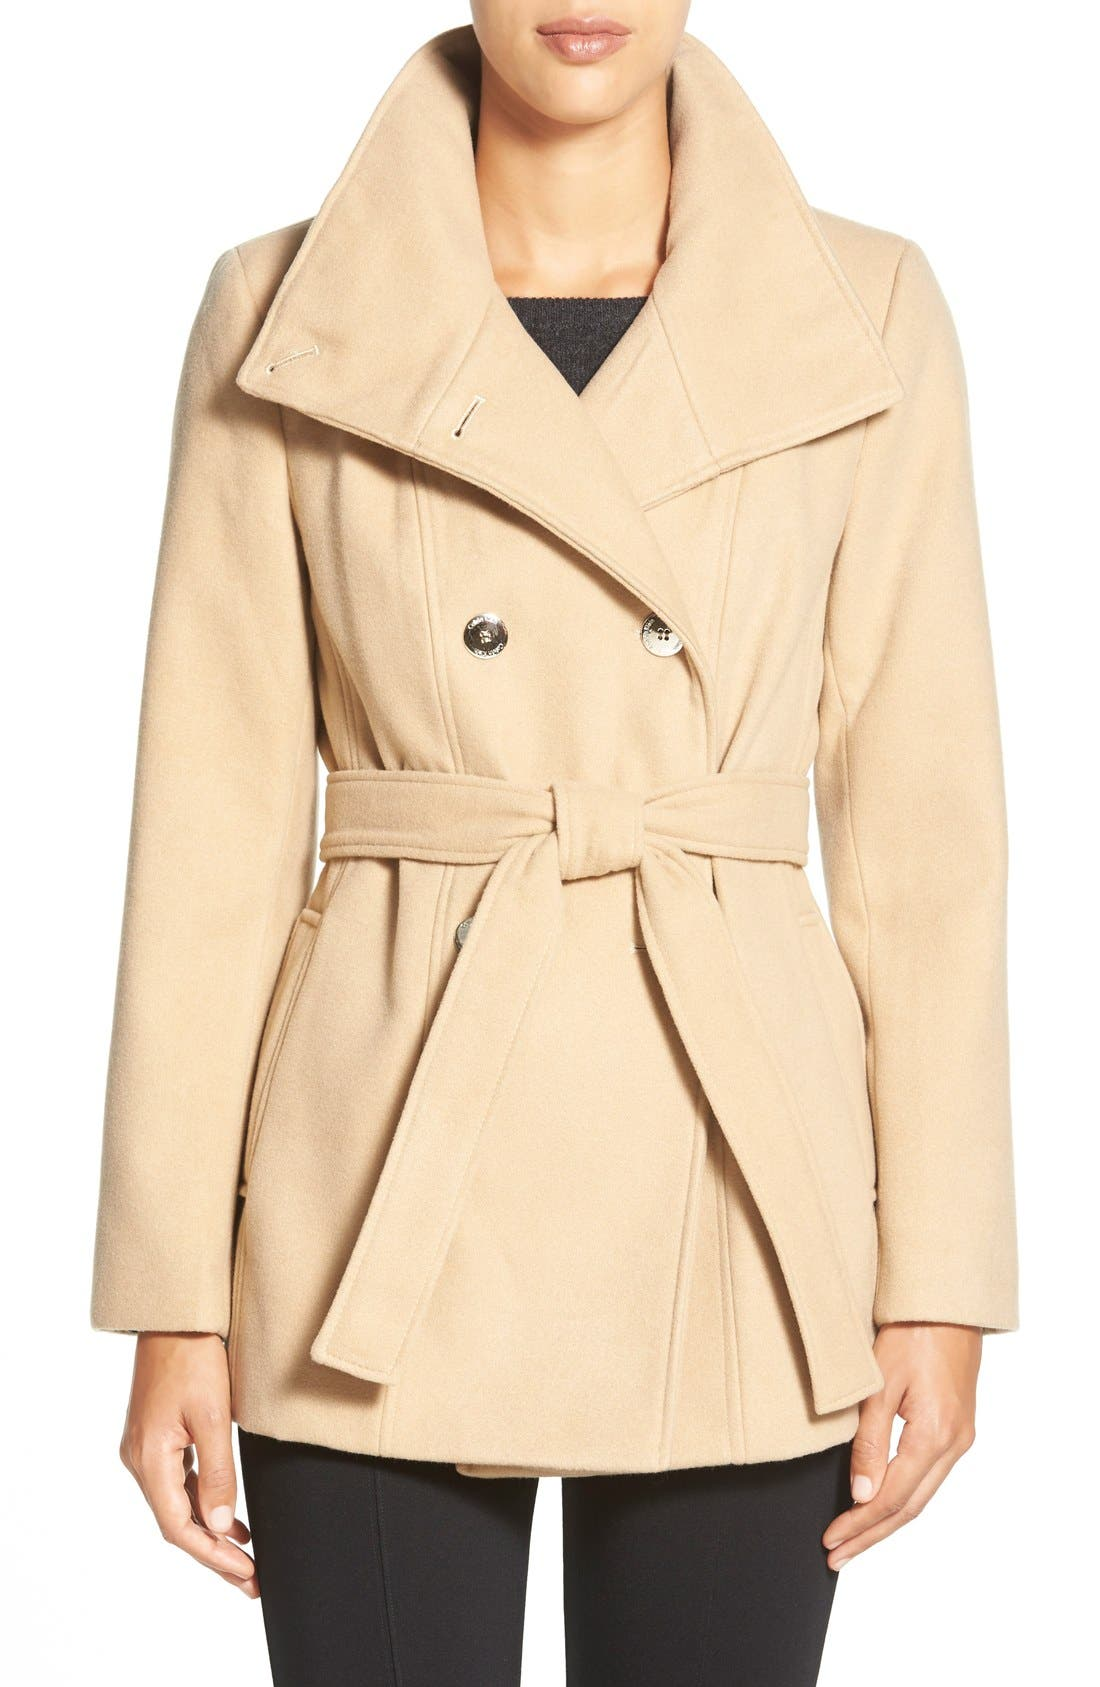 Alternate Image 1 Selected - Calvin Klein Belted Double Breasted Coat (Petite)